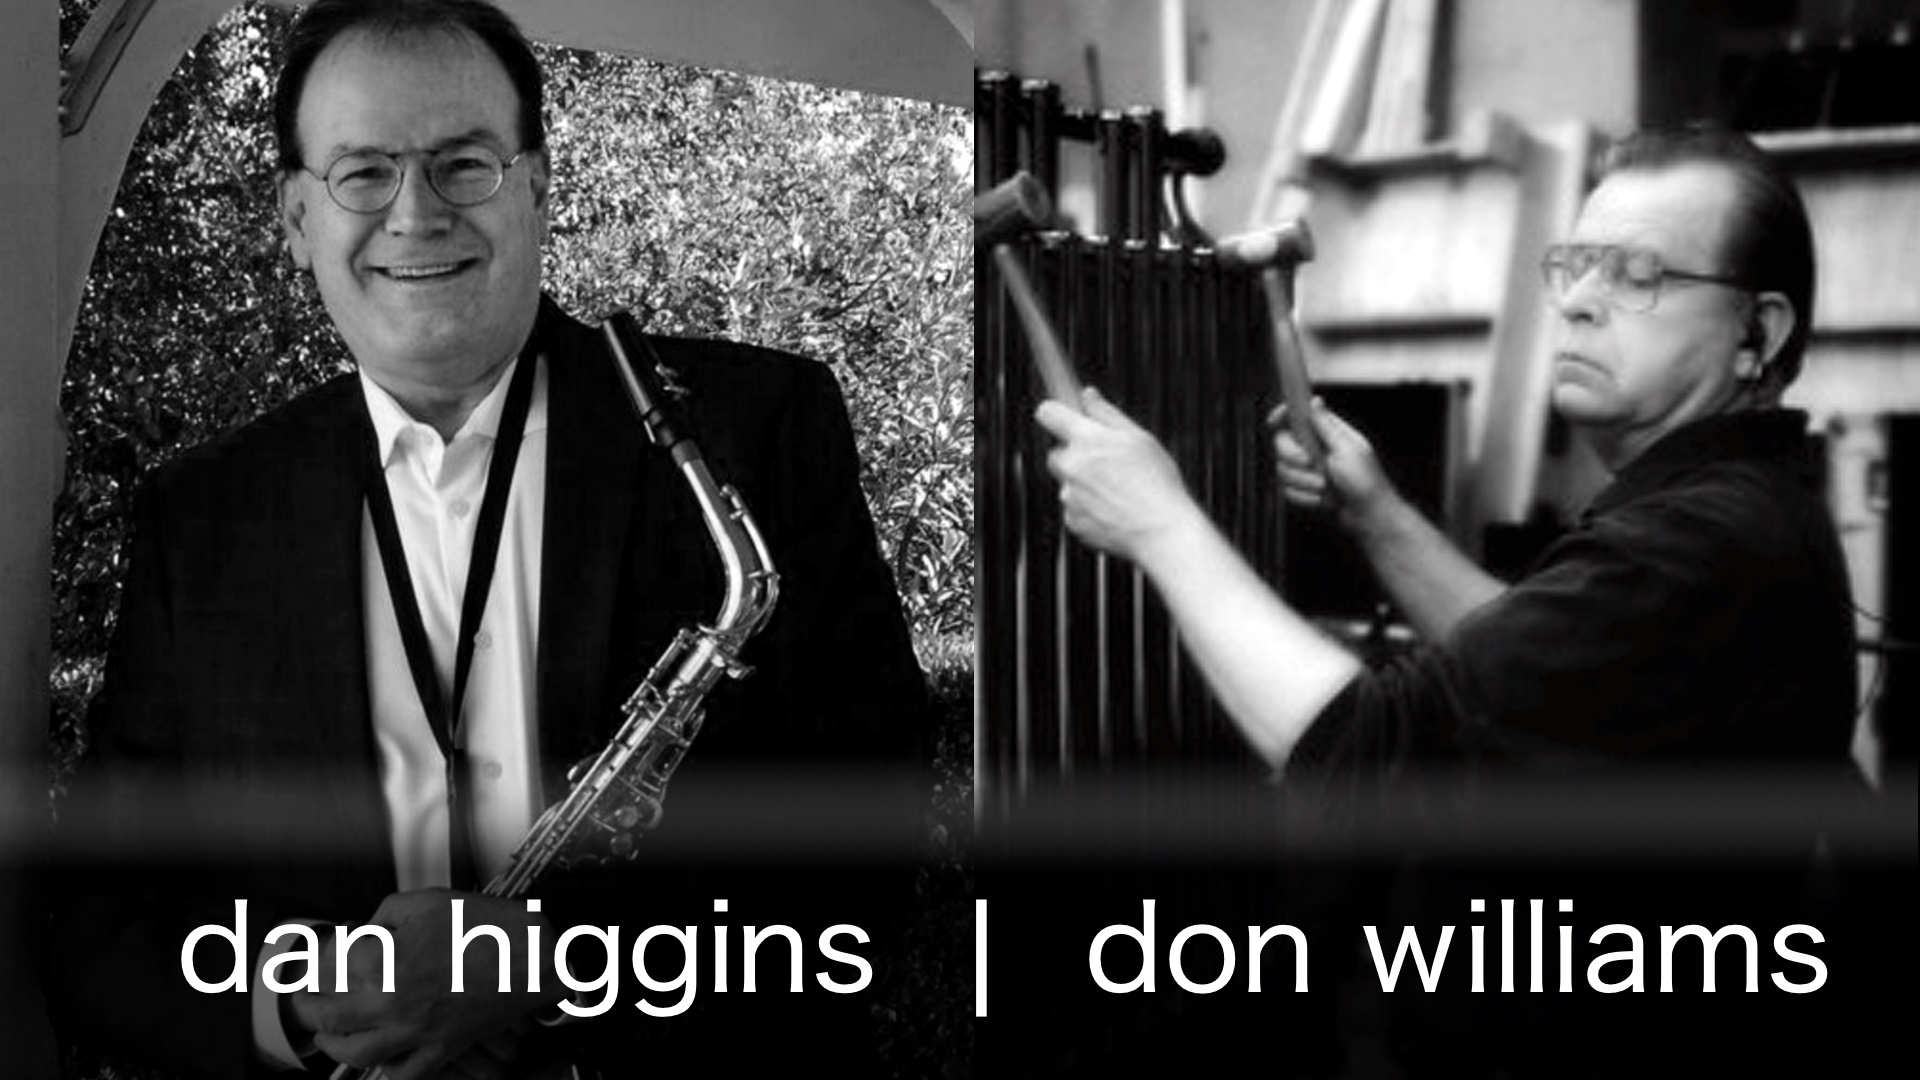 Dan Higgins and Don Williams